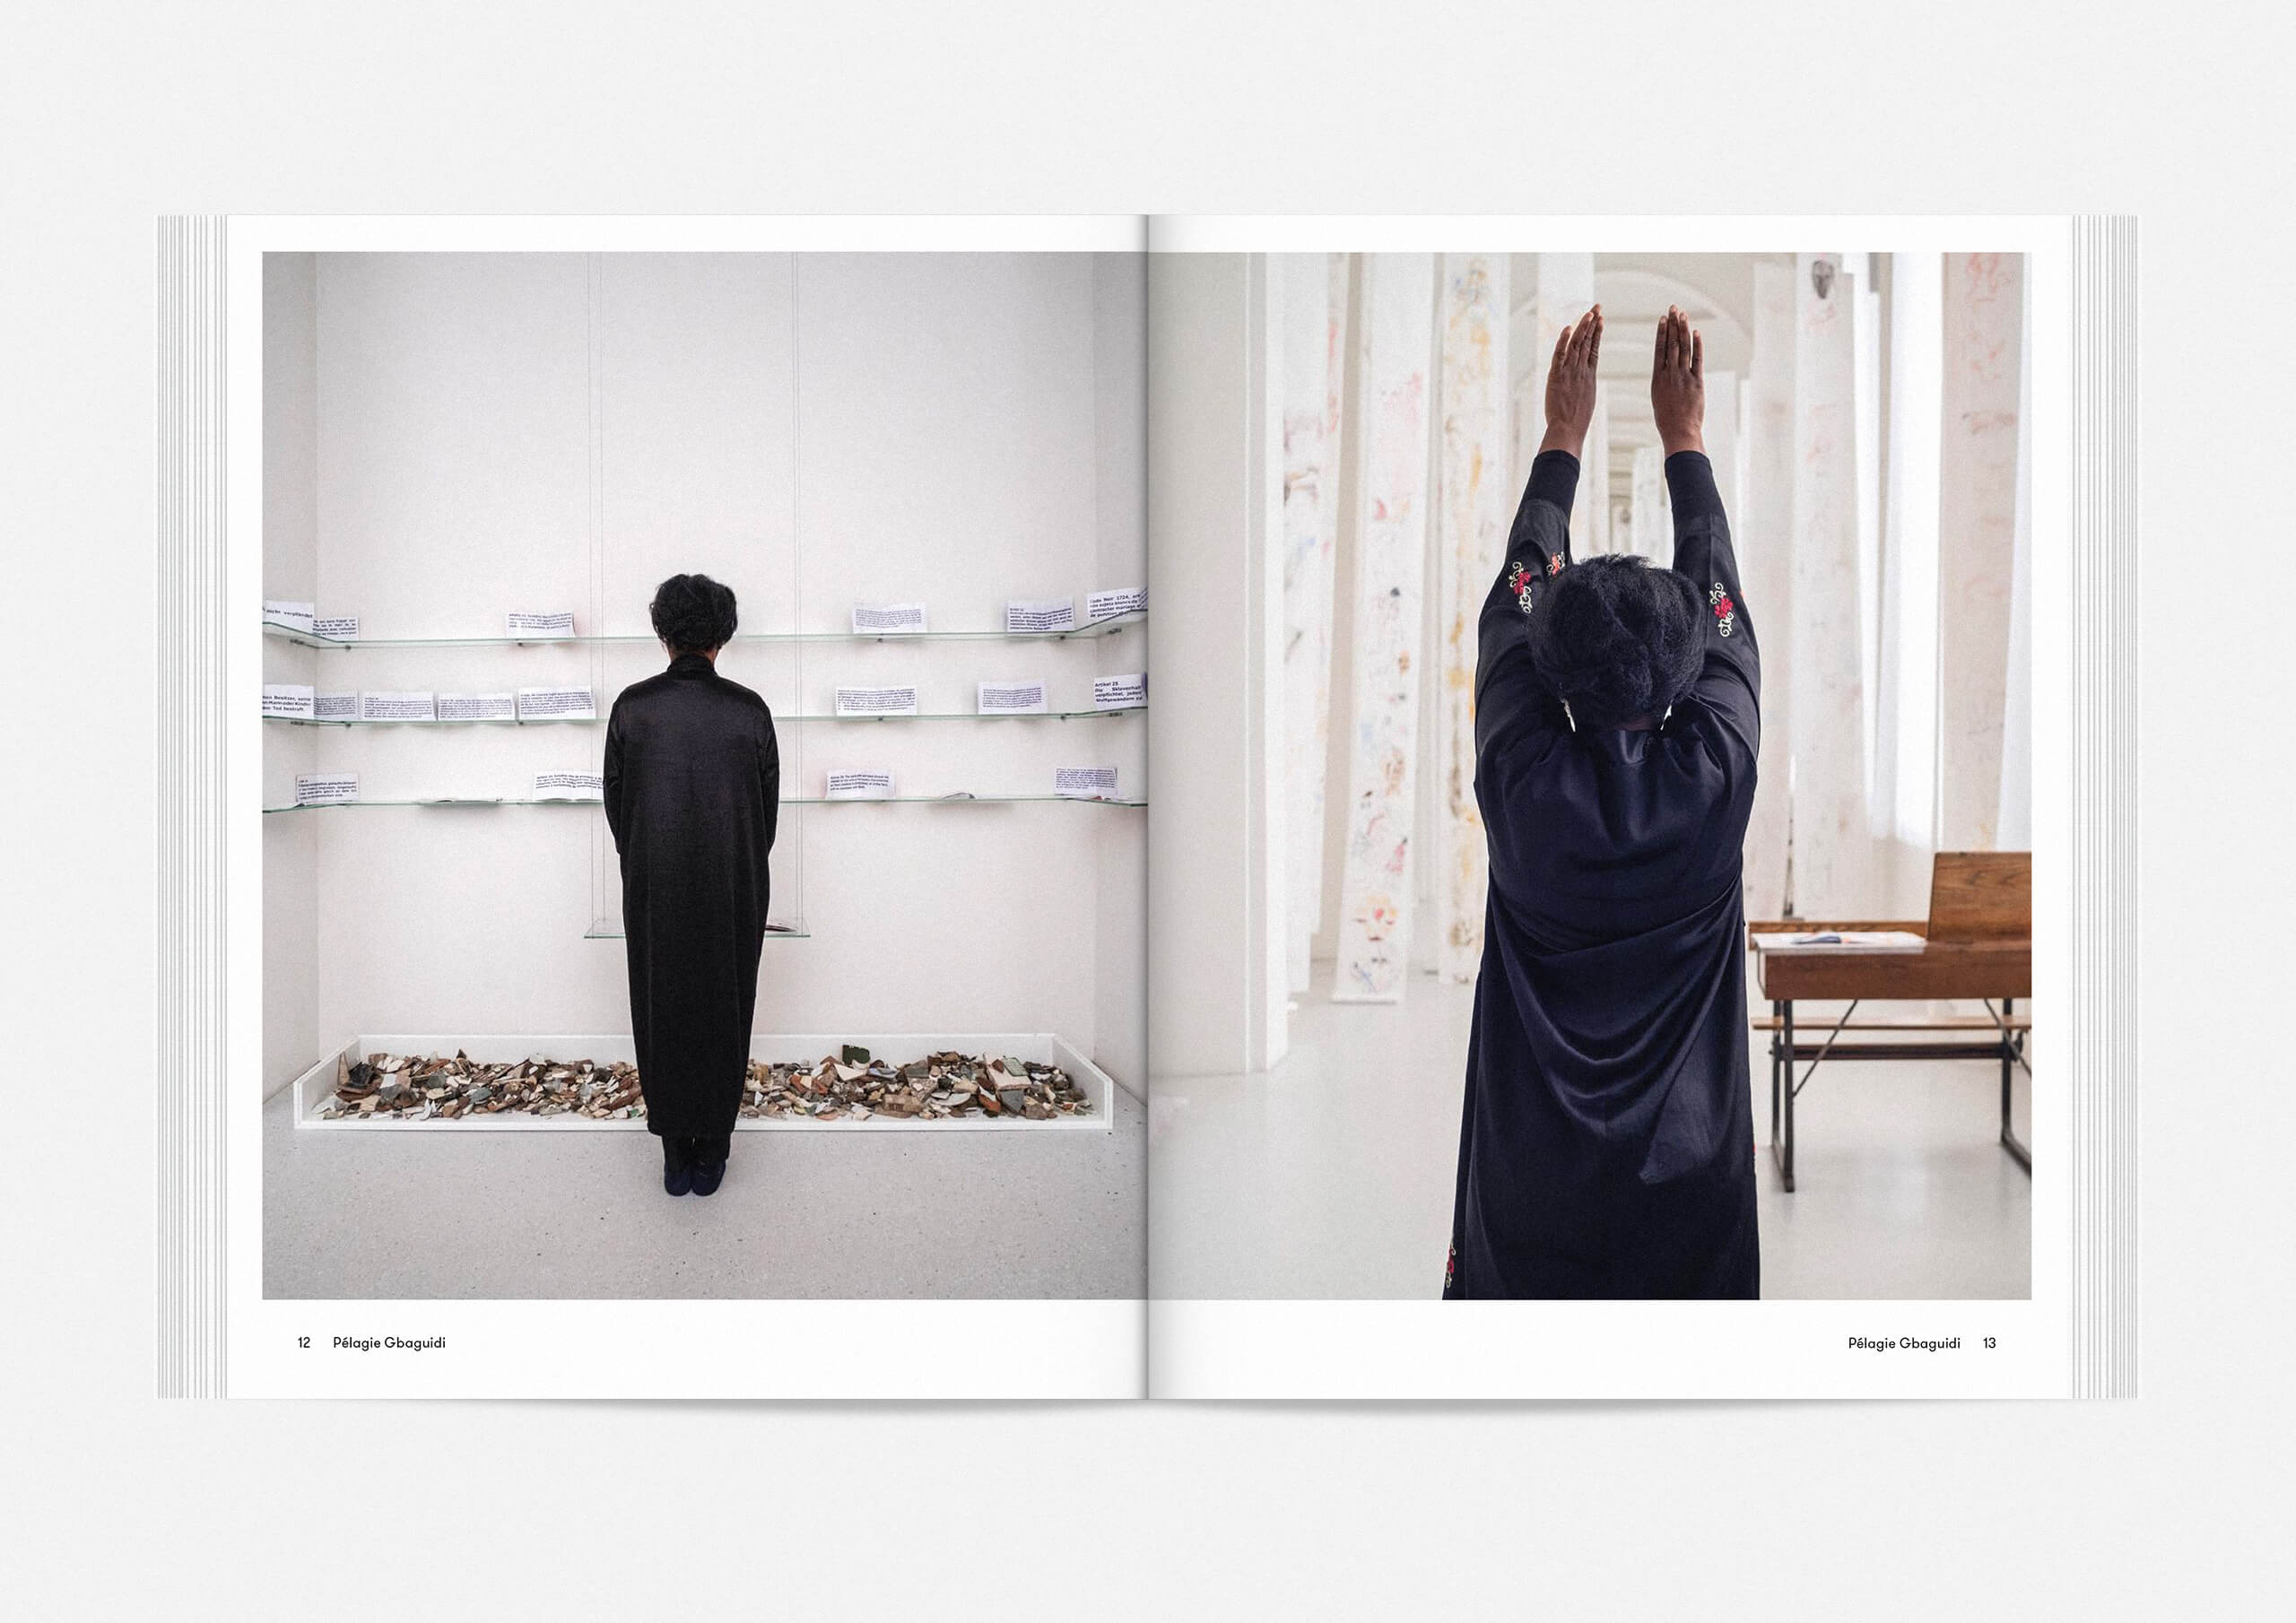 http://neuegestaltung.de/media/pages/clients/protocollum-issue-no-05/3b7bc944fe-1597415142/protocollum-5-page-1213-ng.jpg